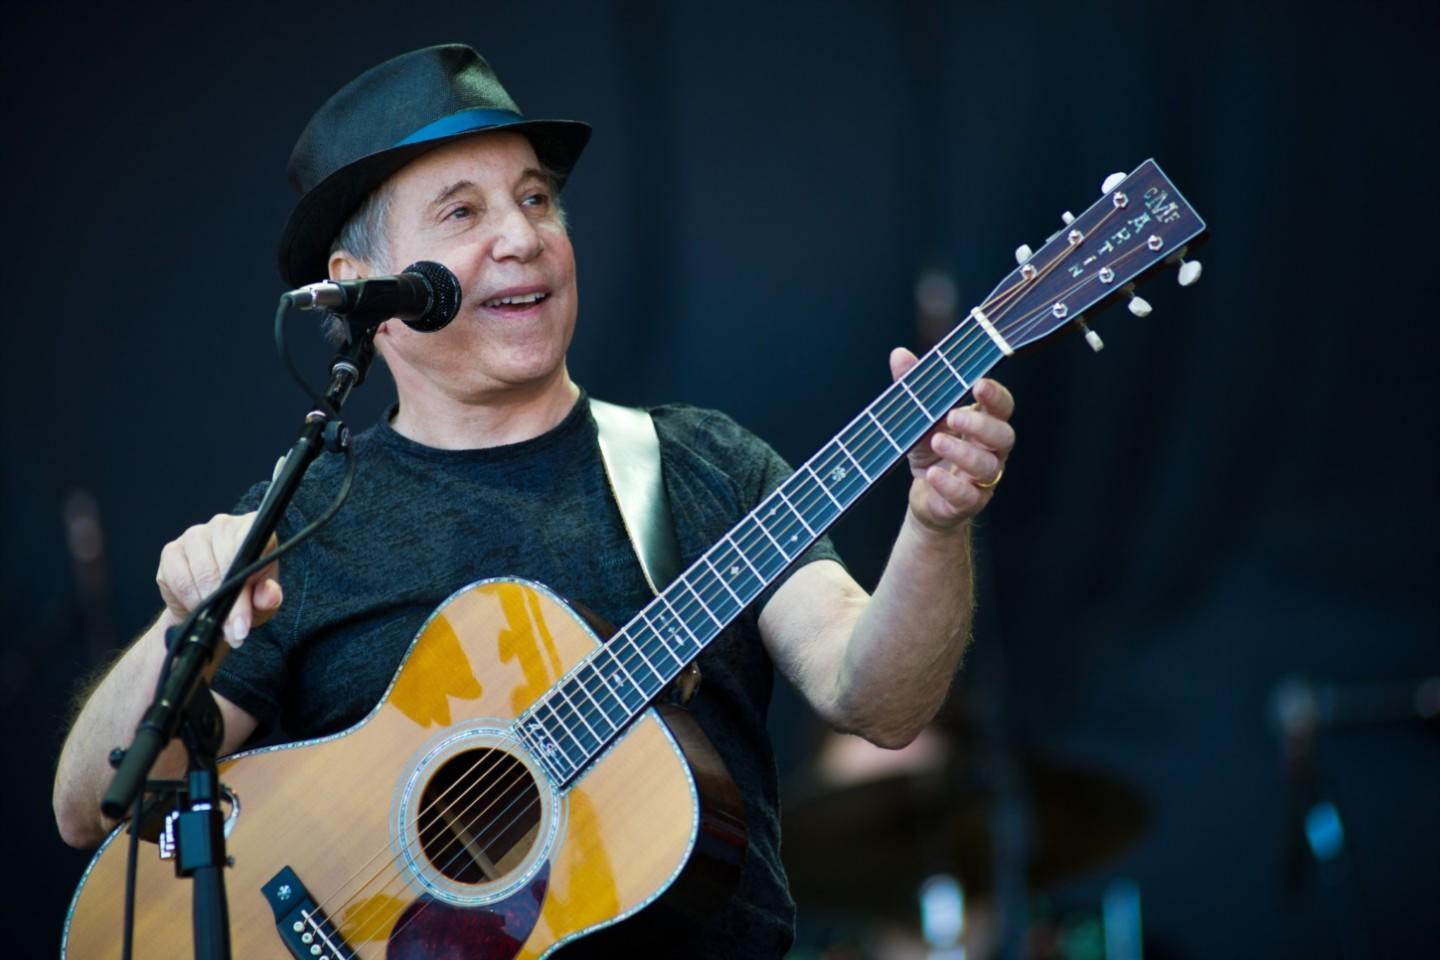 Paul Simon Tour 2020 Paul Simon Tickets | Paul Simon Tour Dates 2020 and Concert